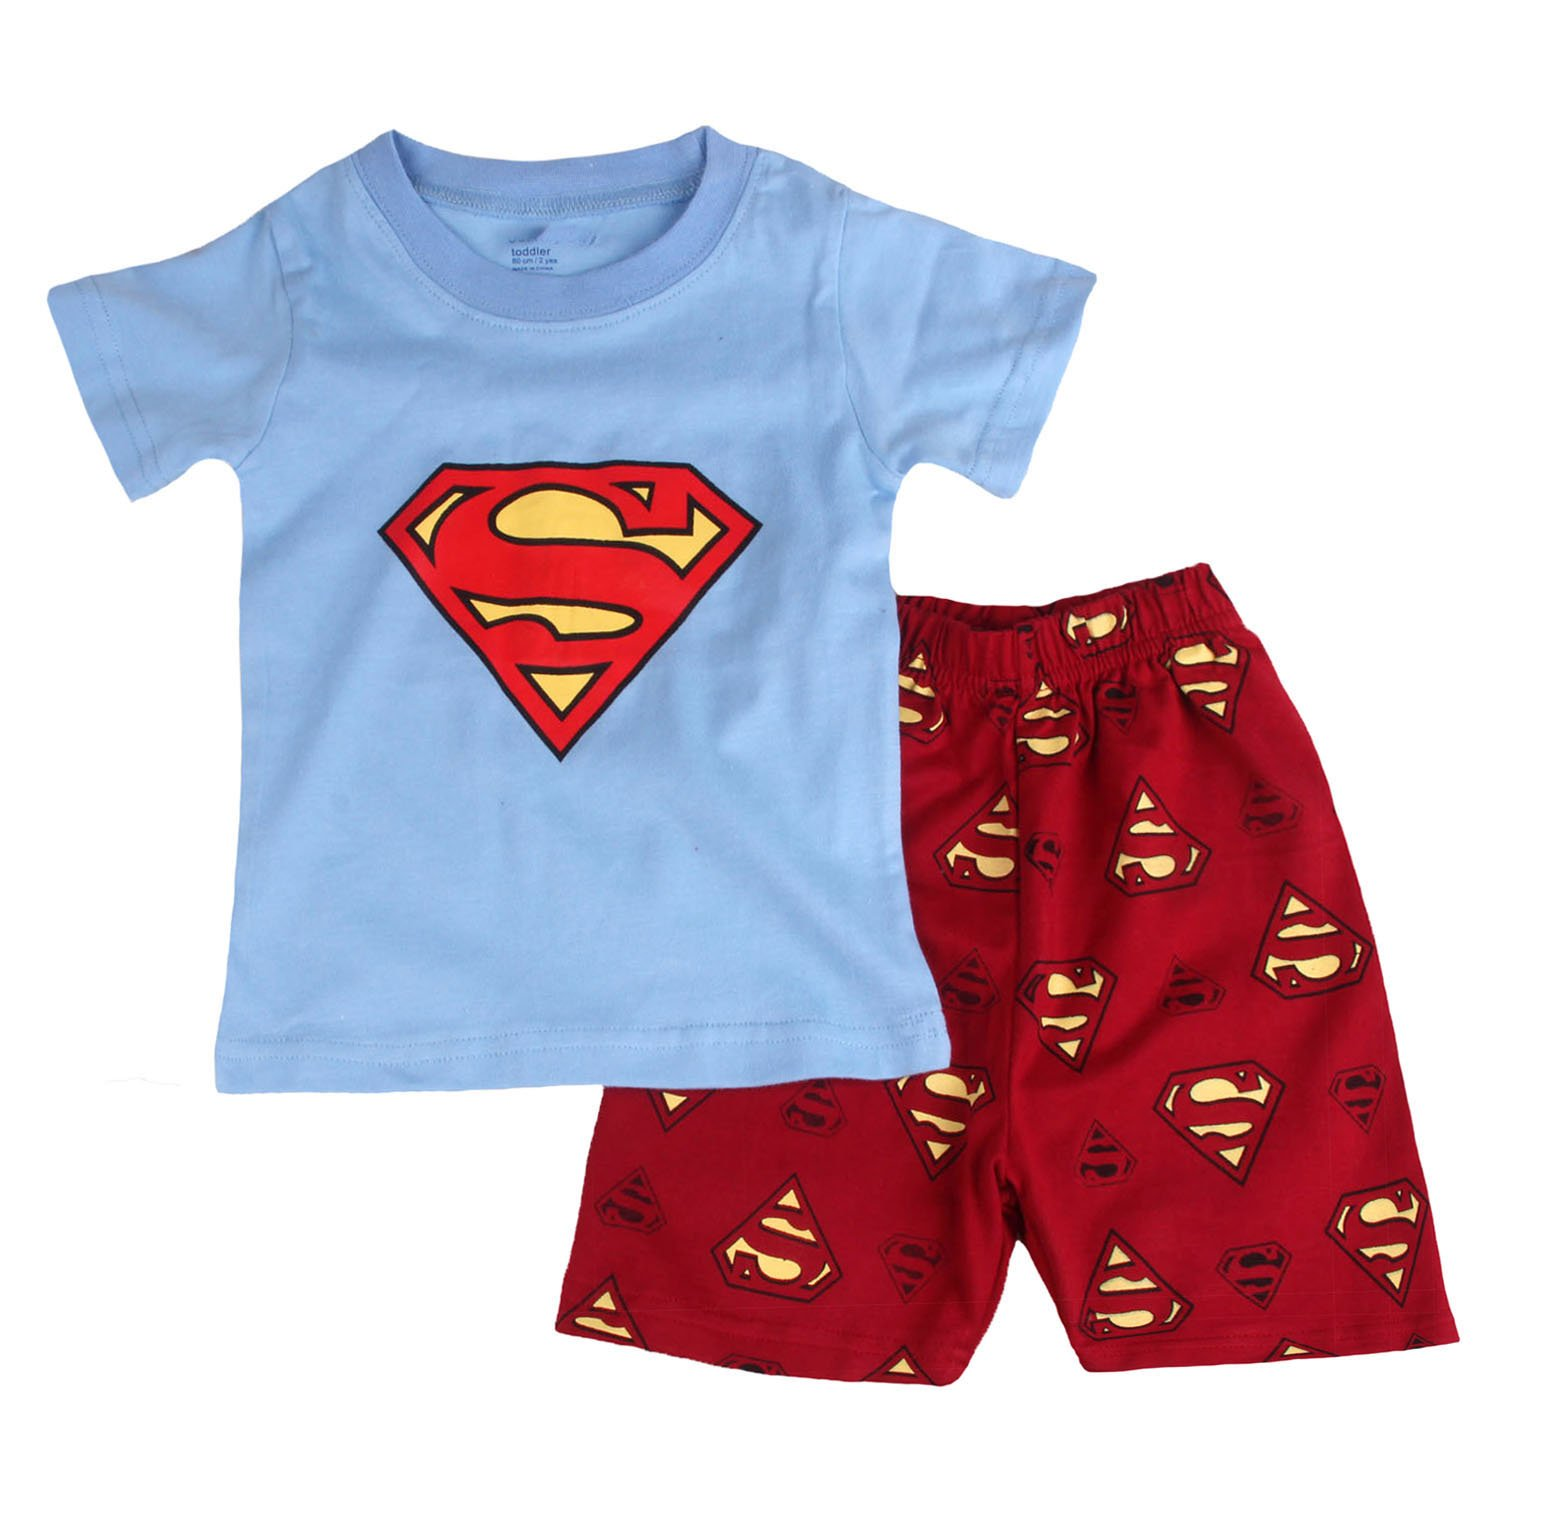 ''Big S '' Boys Shorts 2 Piece Pajama Set 100% Cotton Blue,Size 7-8Yrs